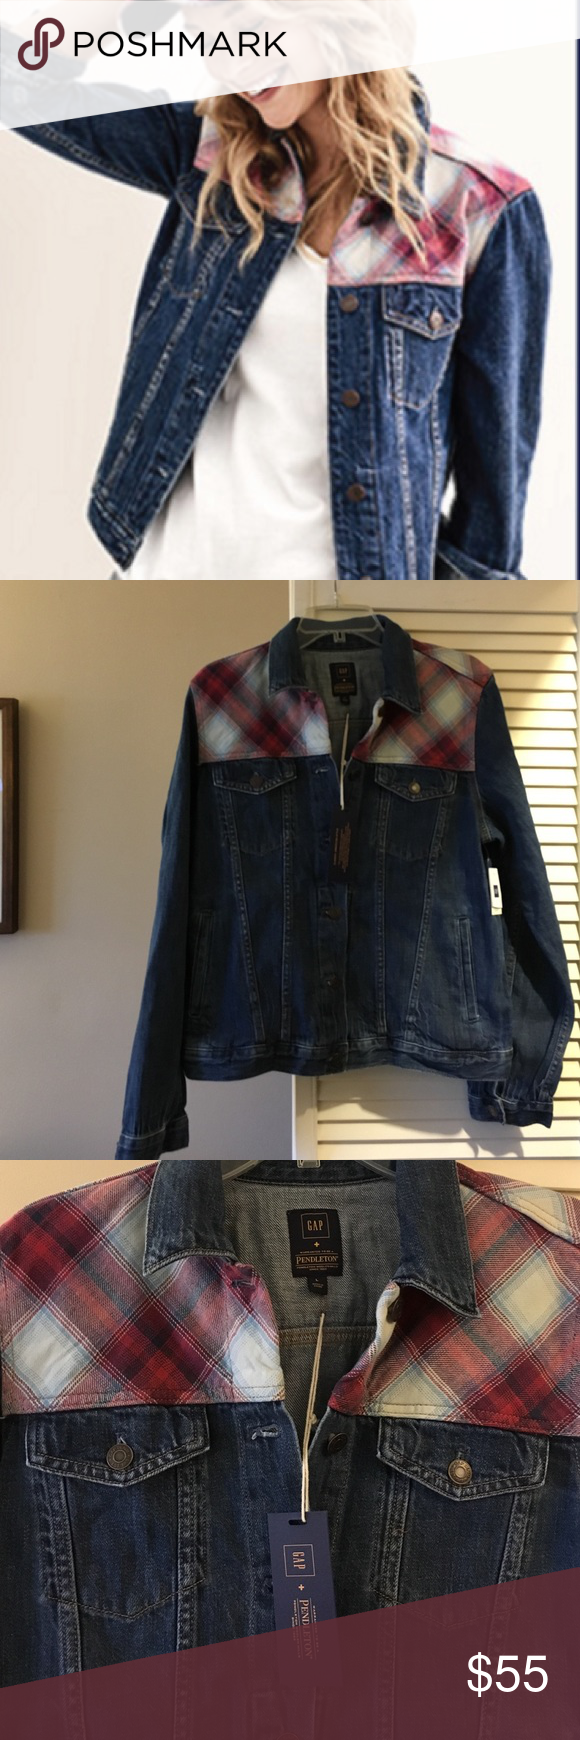 Gap X Pendleton 1969 Icon Denim Jacket Two Iconic Brands Pendleton And Gap Have Come Together For A Singular Denim Jacket Clothes Design Classic Jeans [ 1740 x 580 Pixel ]